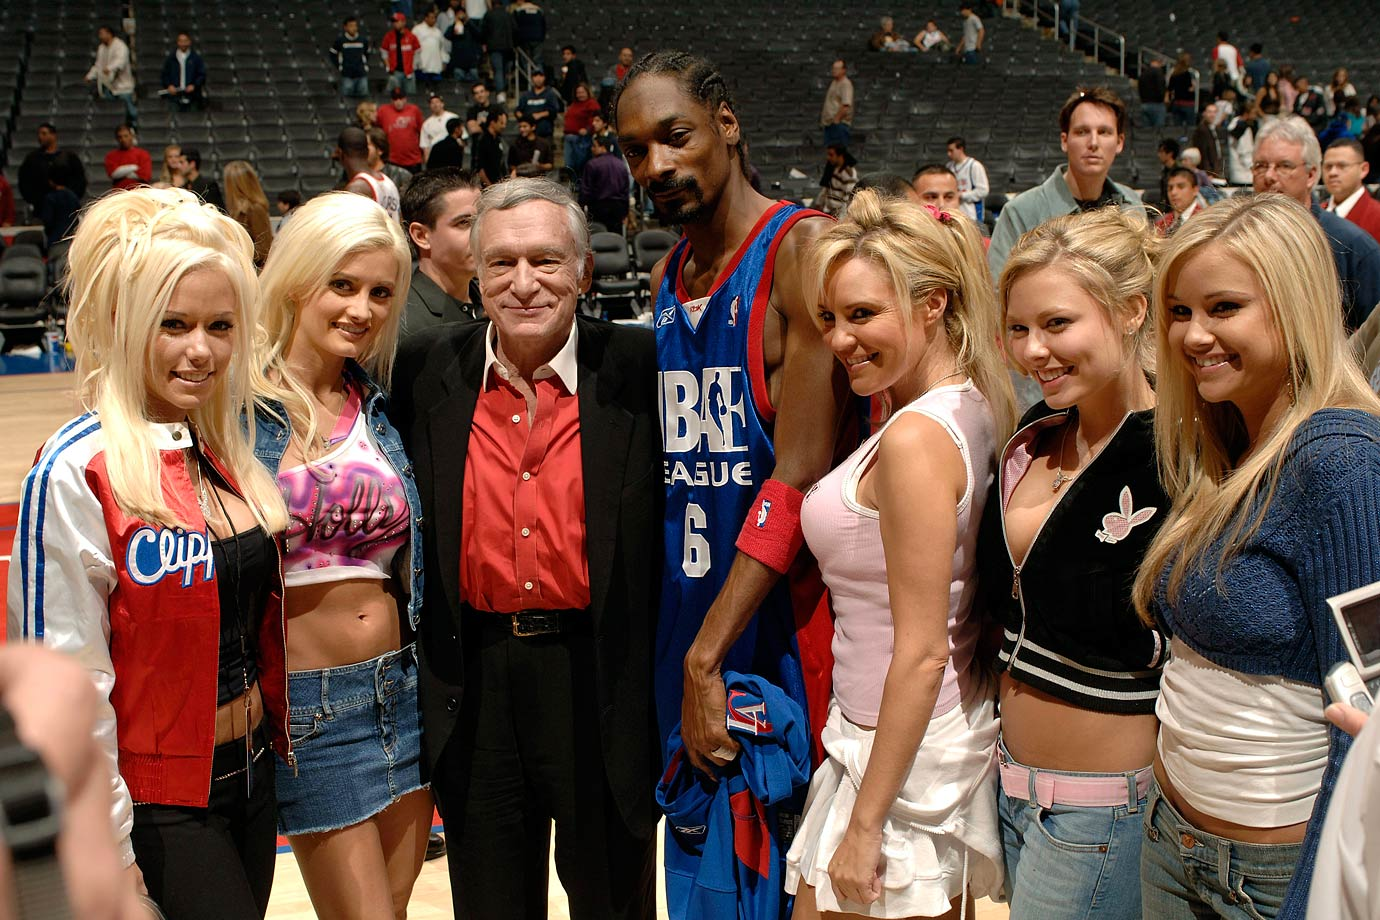 Snoop Dogg poses with Hugh Hefner and his Playboy Playmates during the NBA Entertainment League Charity Basketball Game on Dec. 10, 2005 at Staples Center in Los Angeles.